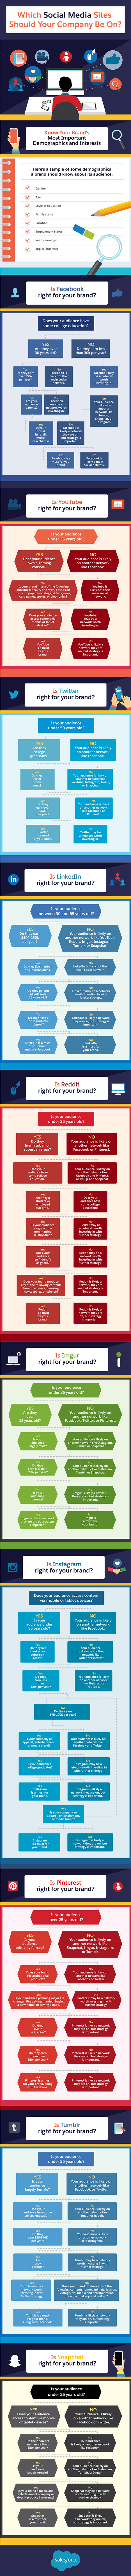 Facebook, Twitter, Reddit, Imgur, Instagram or Pinterest? Which Social Media Sites Should Your Company Be On - #infographic   MarketingHits   Scoop.it